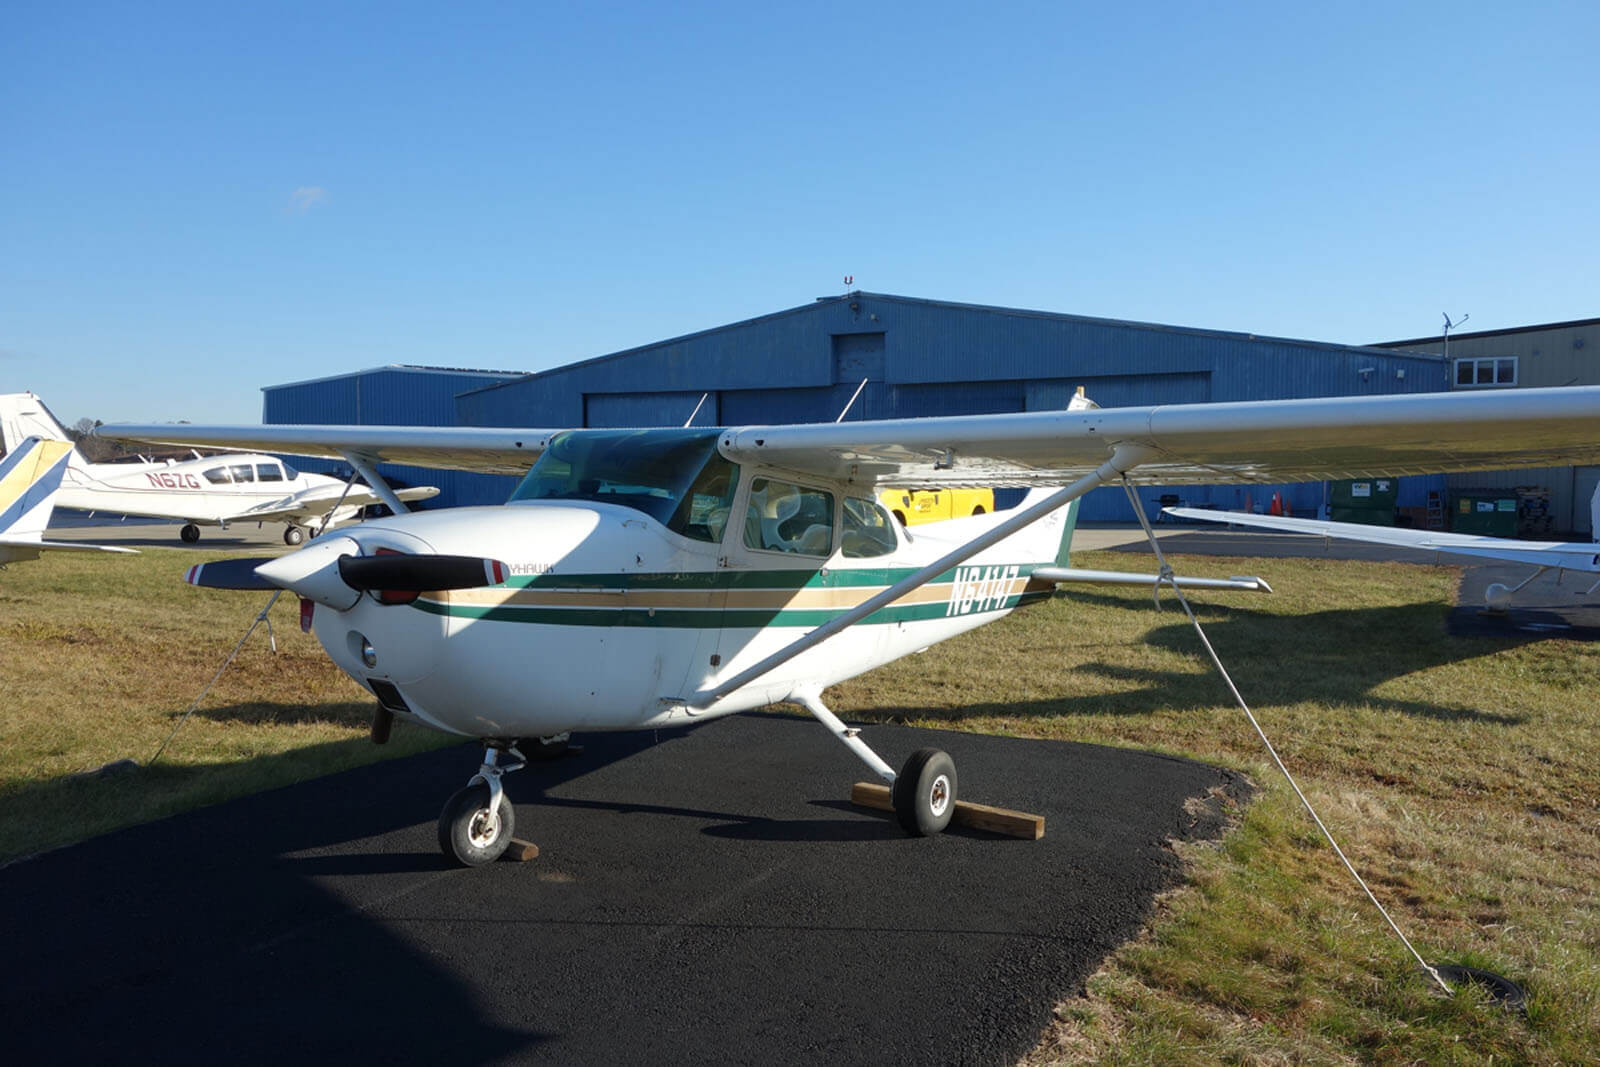 1975 Cessna 172 Skyhawk ~ FOR SALE at Princeton Airport - PRINCETON